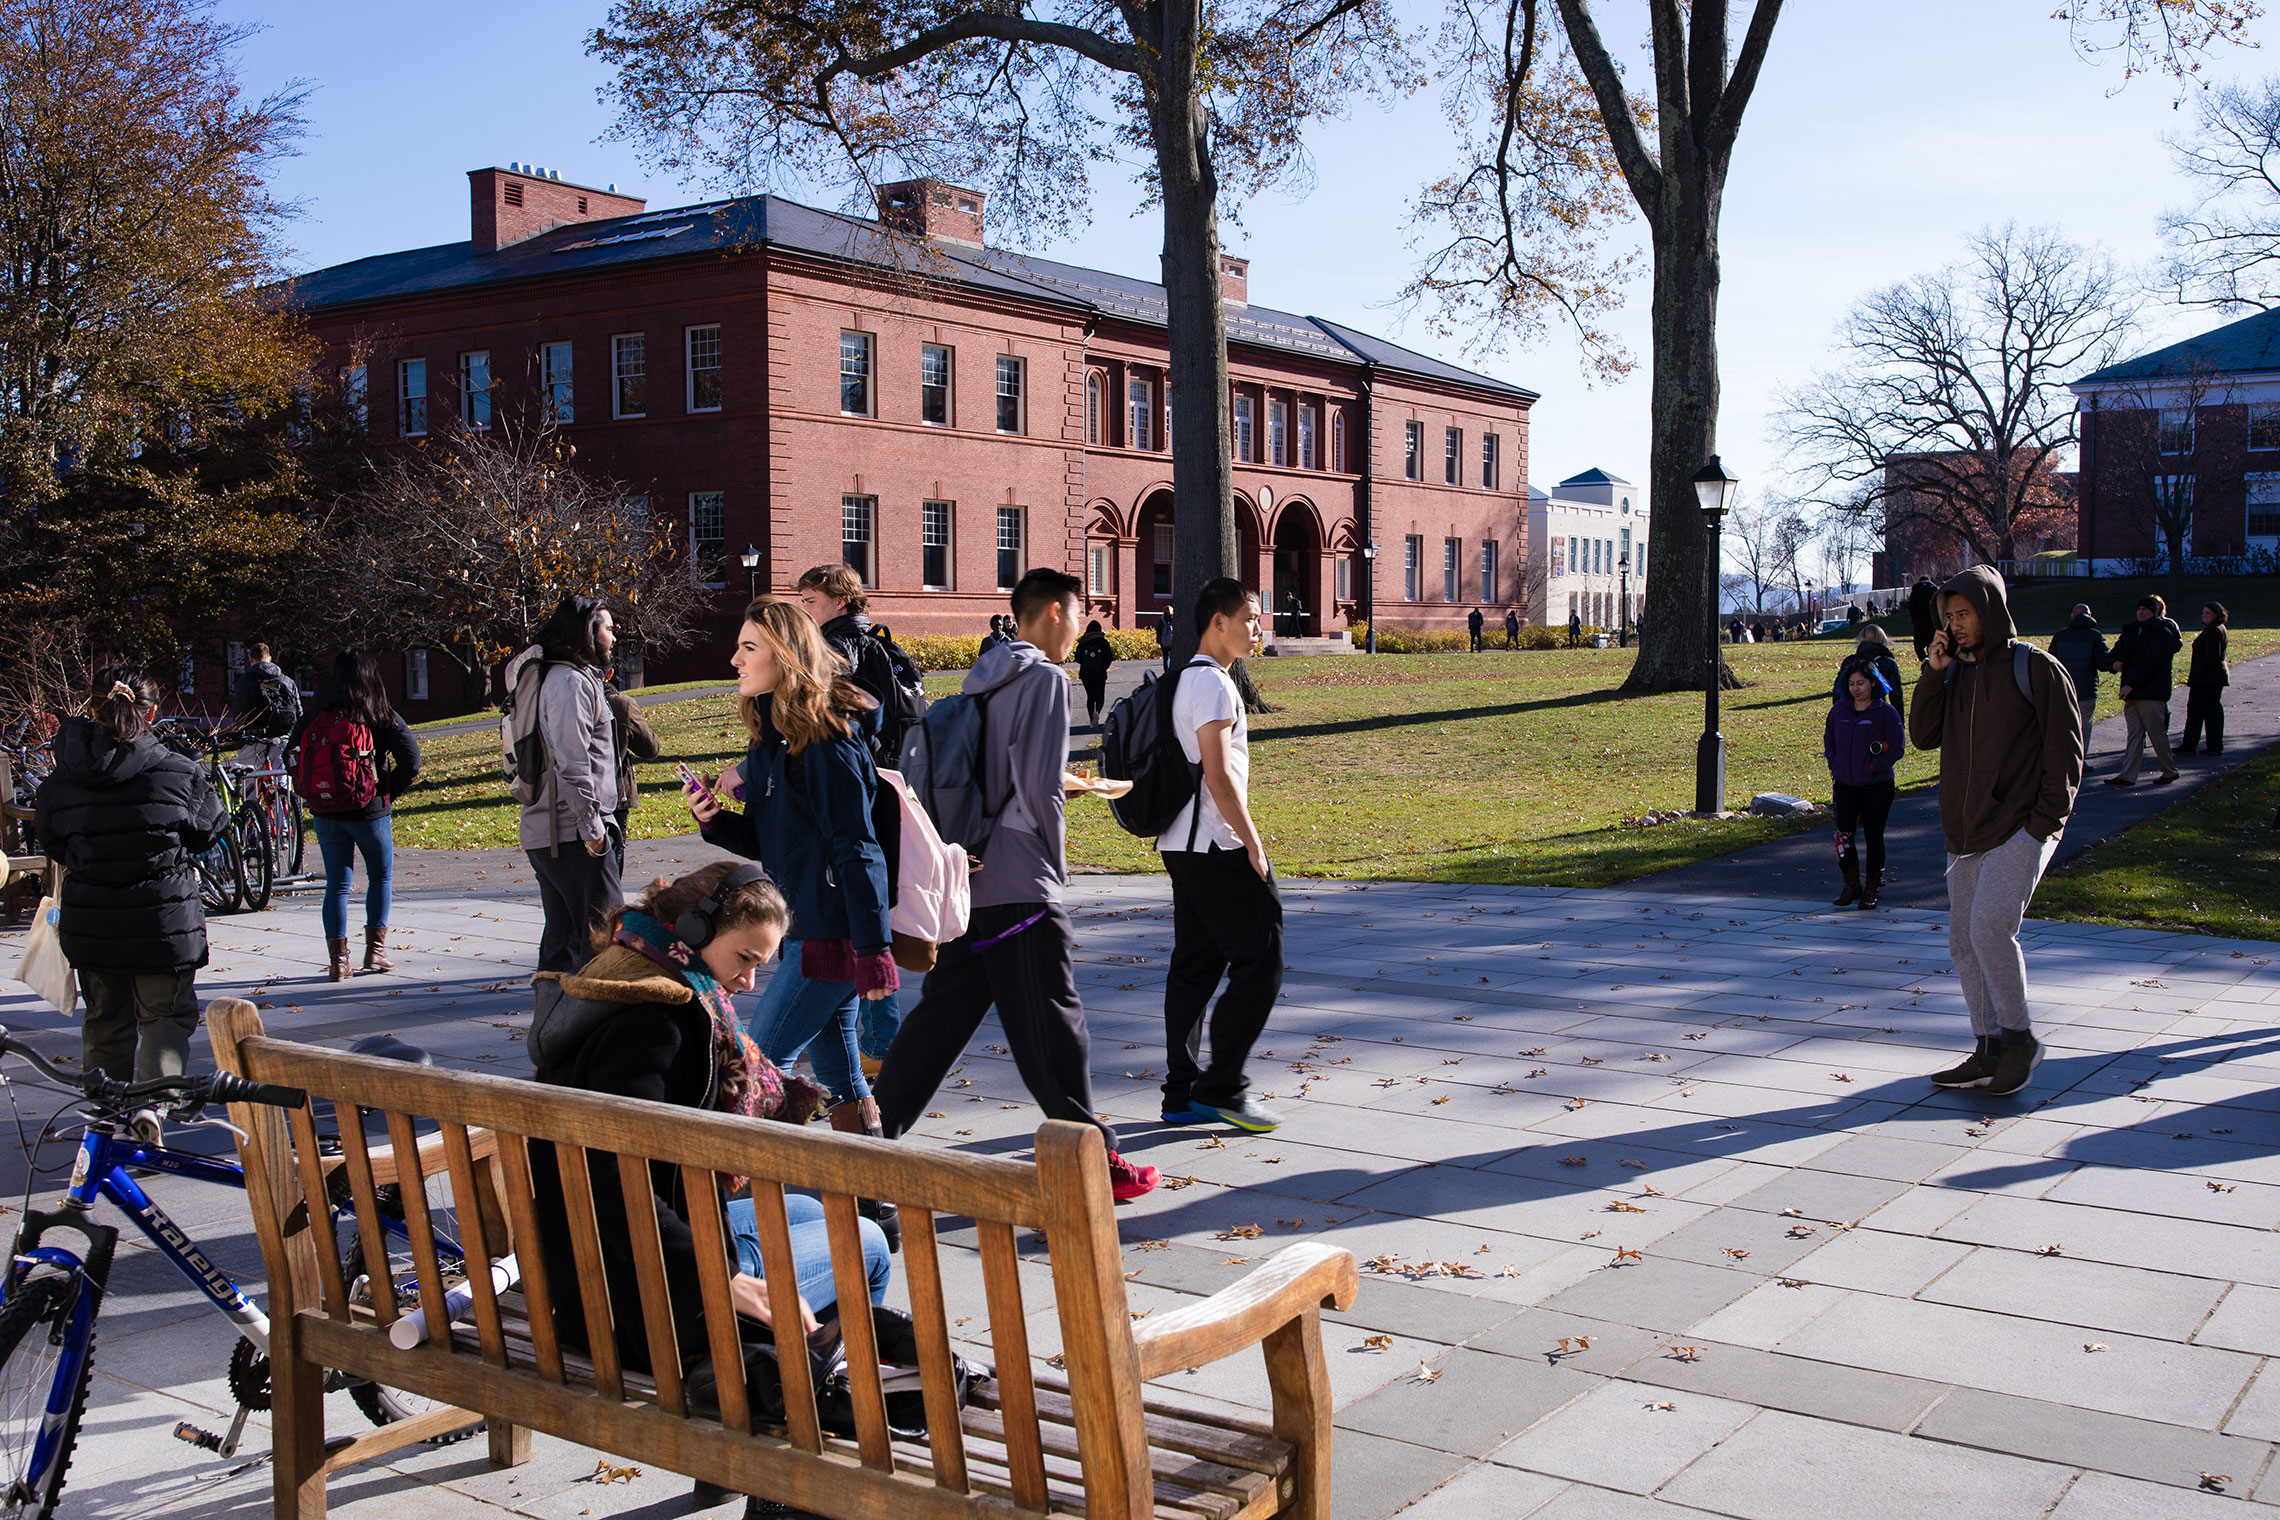 Students walking to classes on a sunny day in early fall at Amherst College.